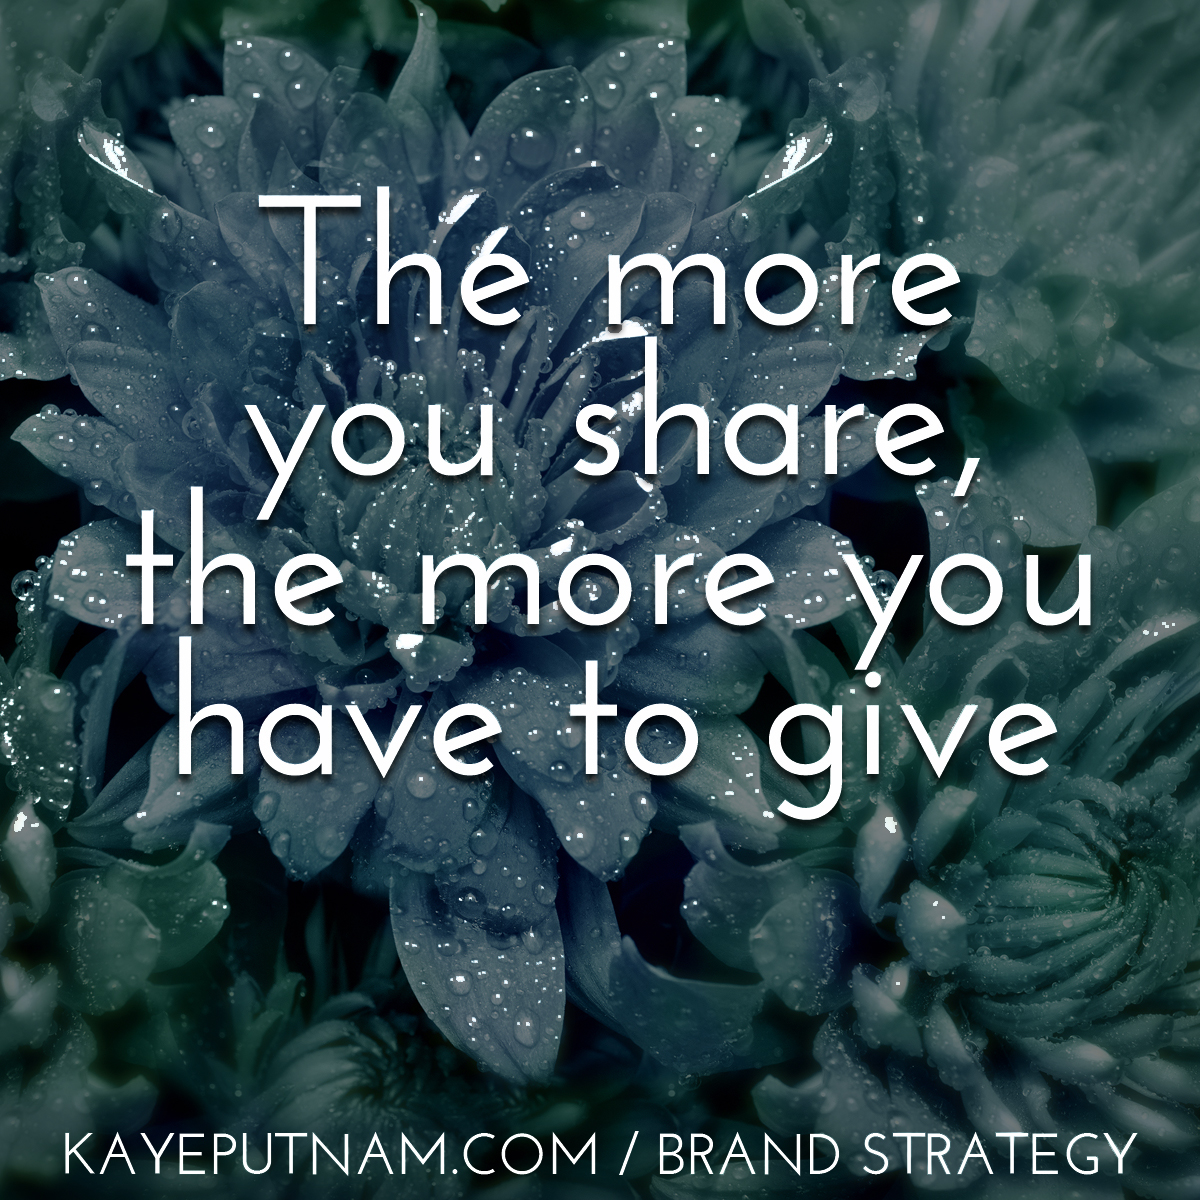 The more you share, the more you have to give. #InDemandBrand